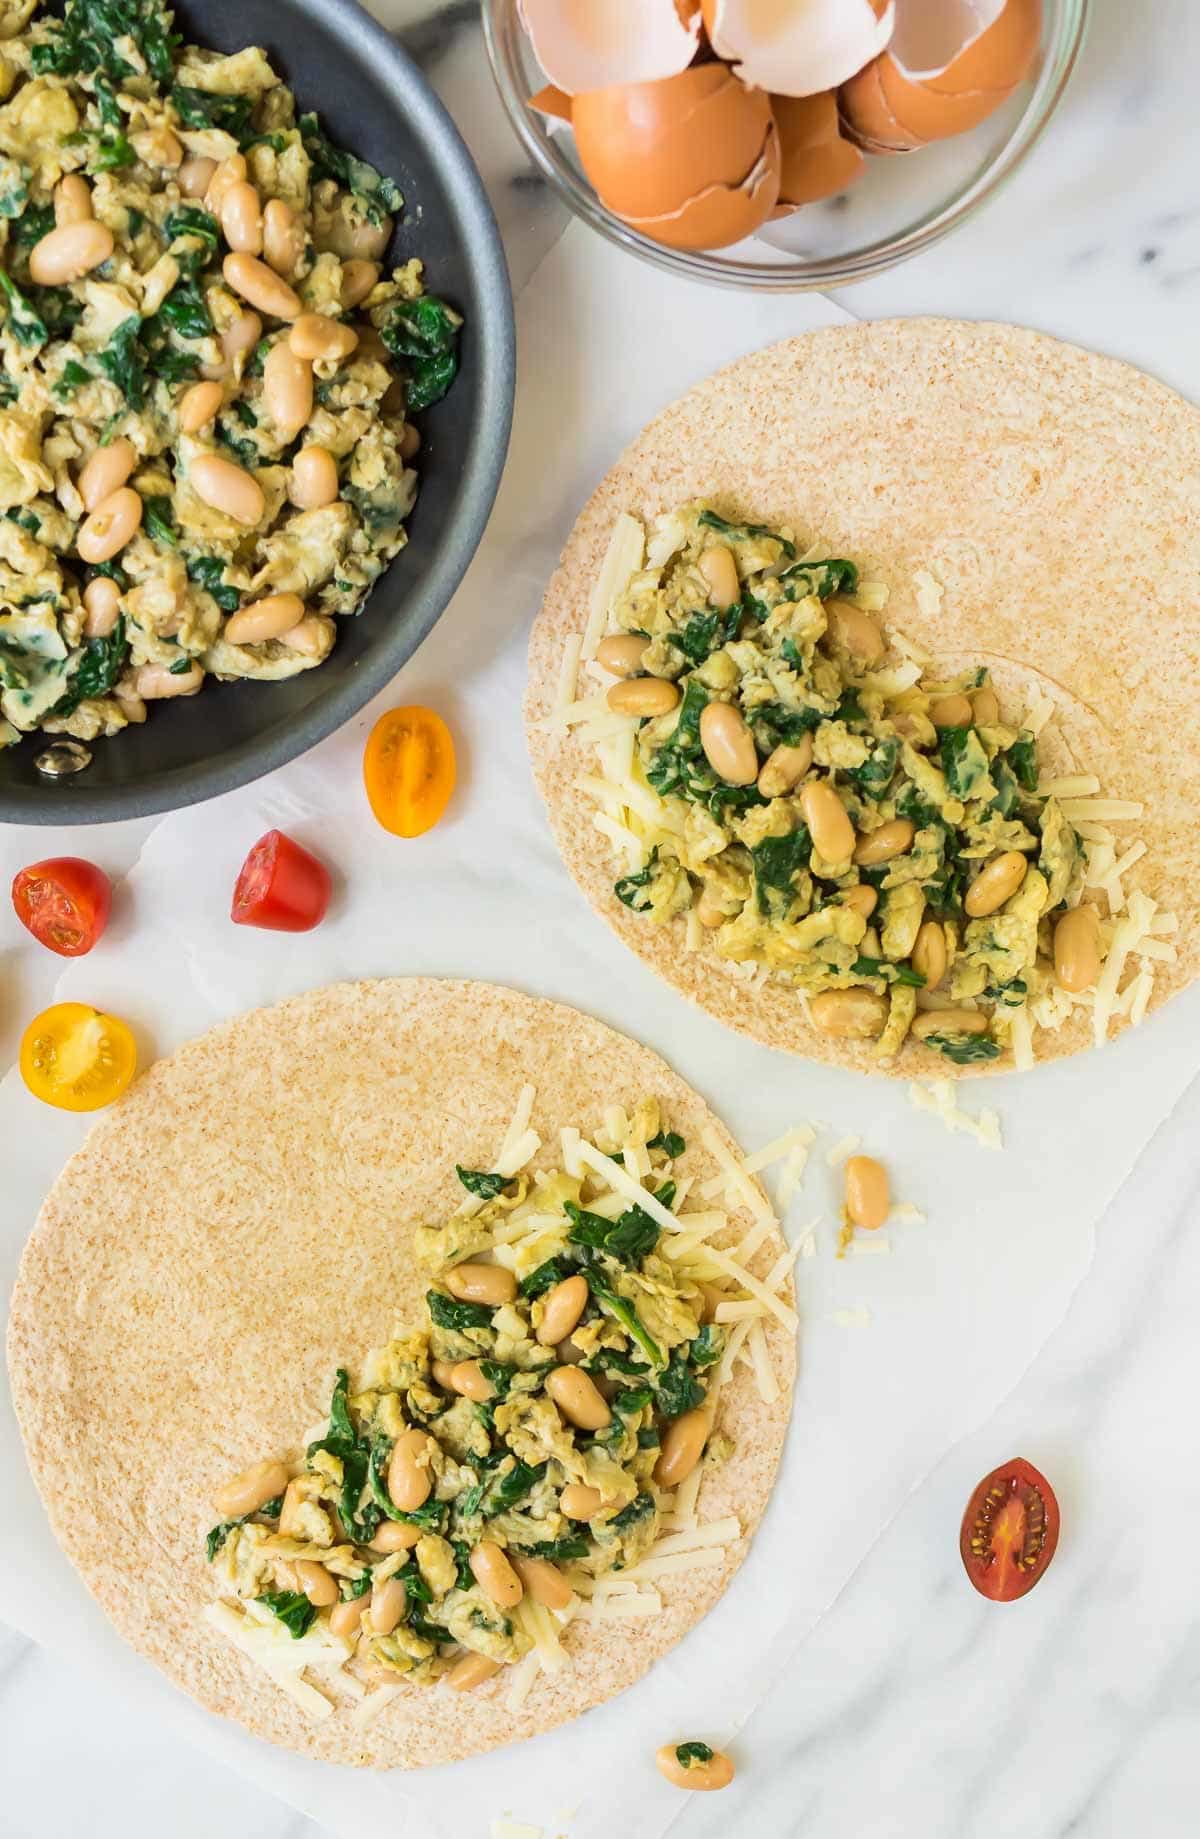 Filling wheat tortillas with scrambled eggs, spinach, cheese and white beans for breakfast quesadillas